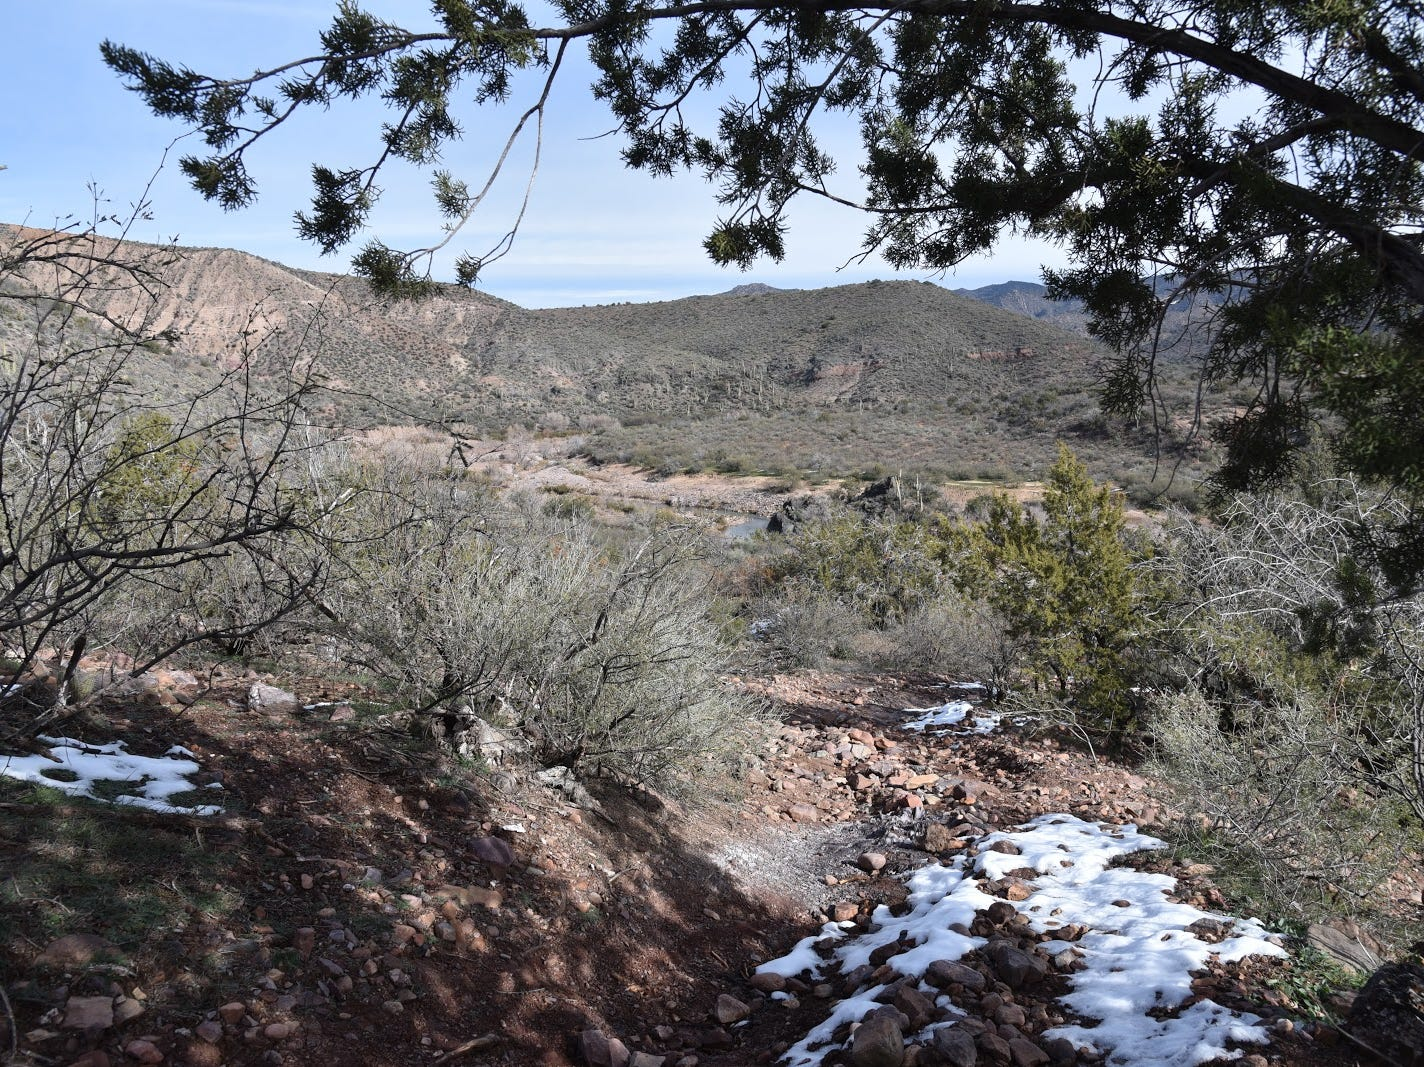 The descent to Tonto Creek is steep and rocky.